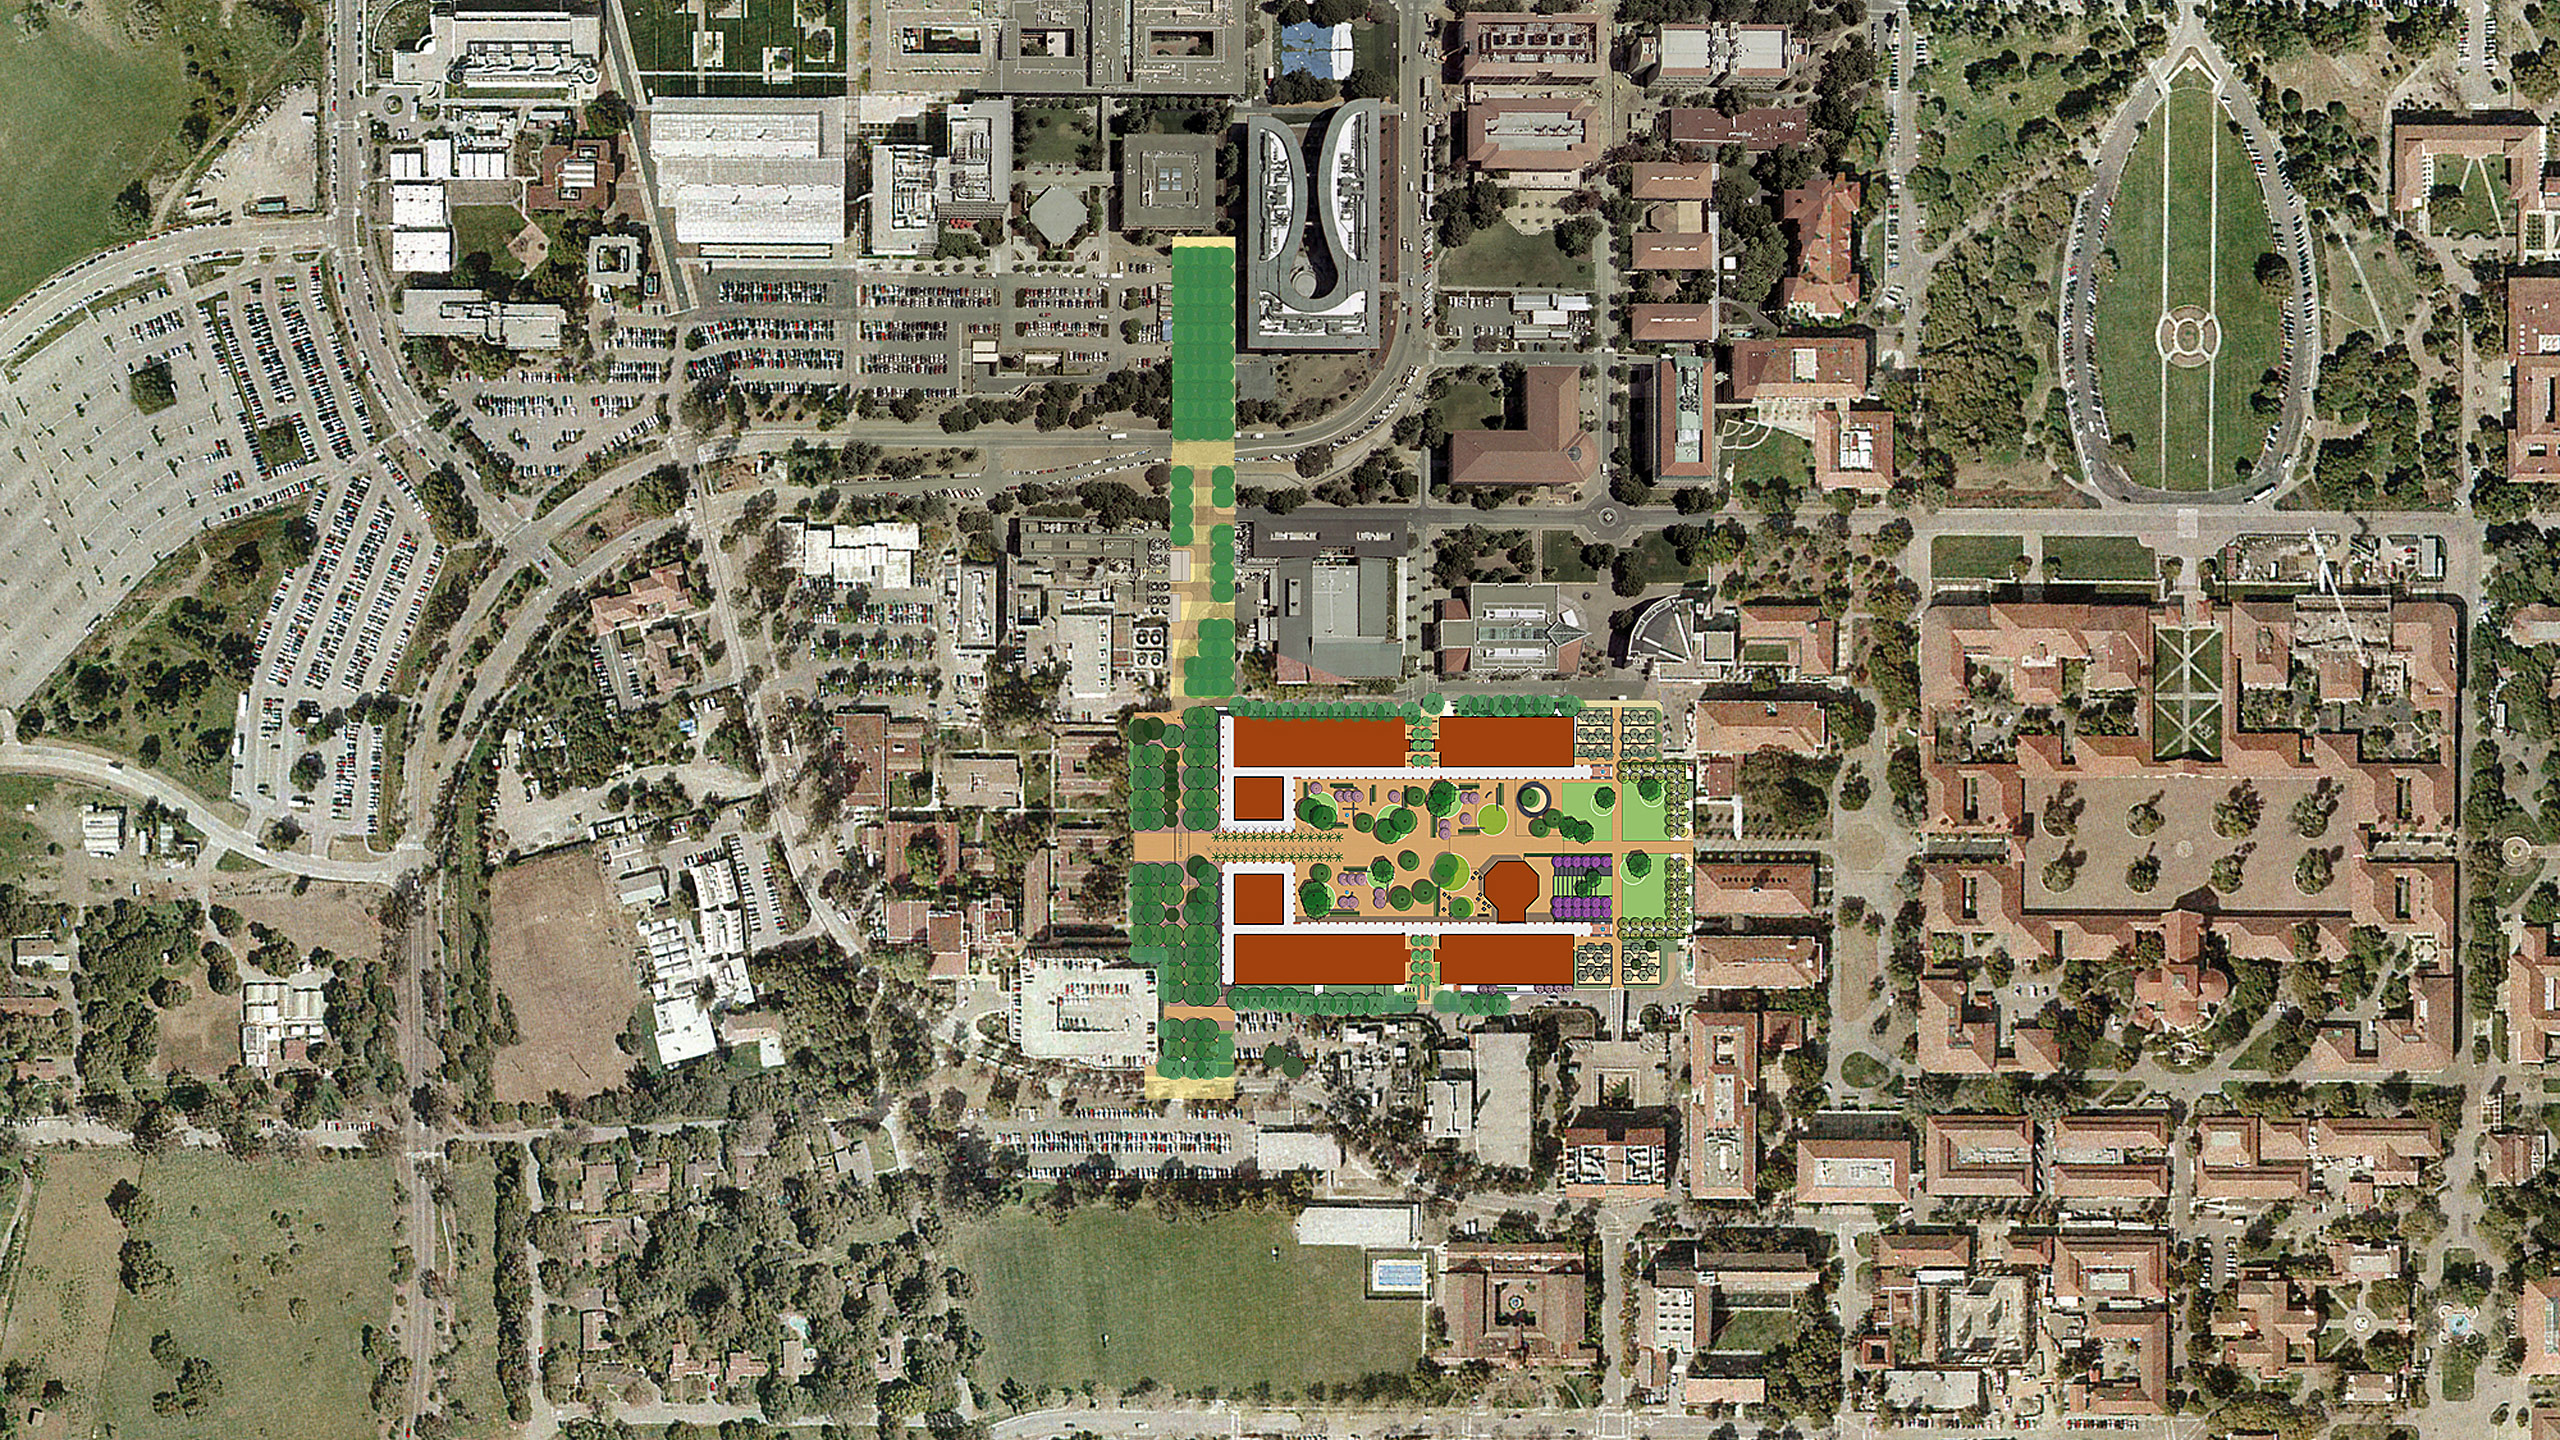 Science and Engineering Quad Master Plan and Design Guidelines – Stanford University image 3